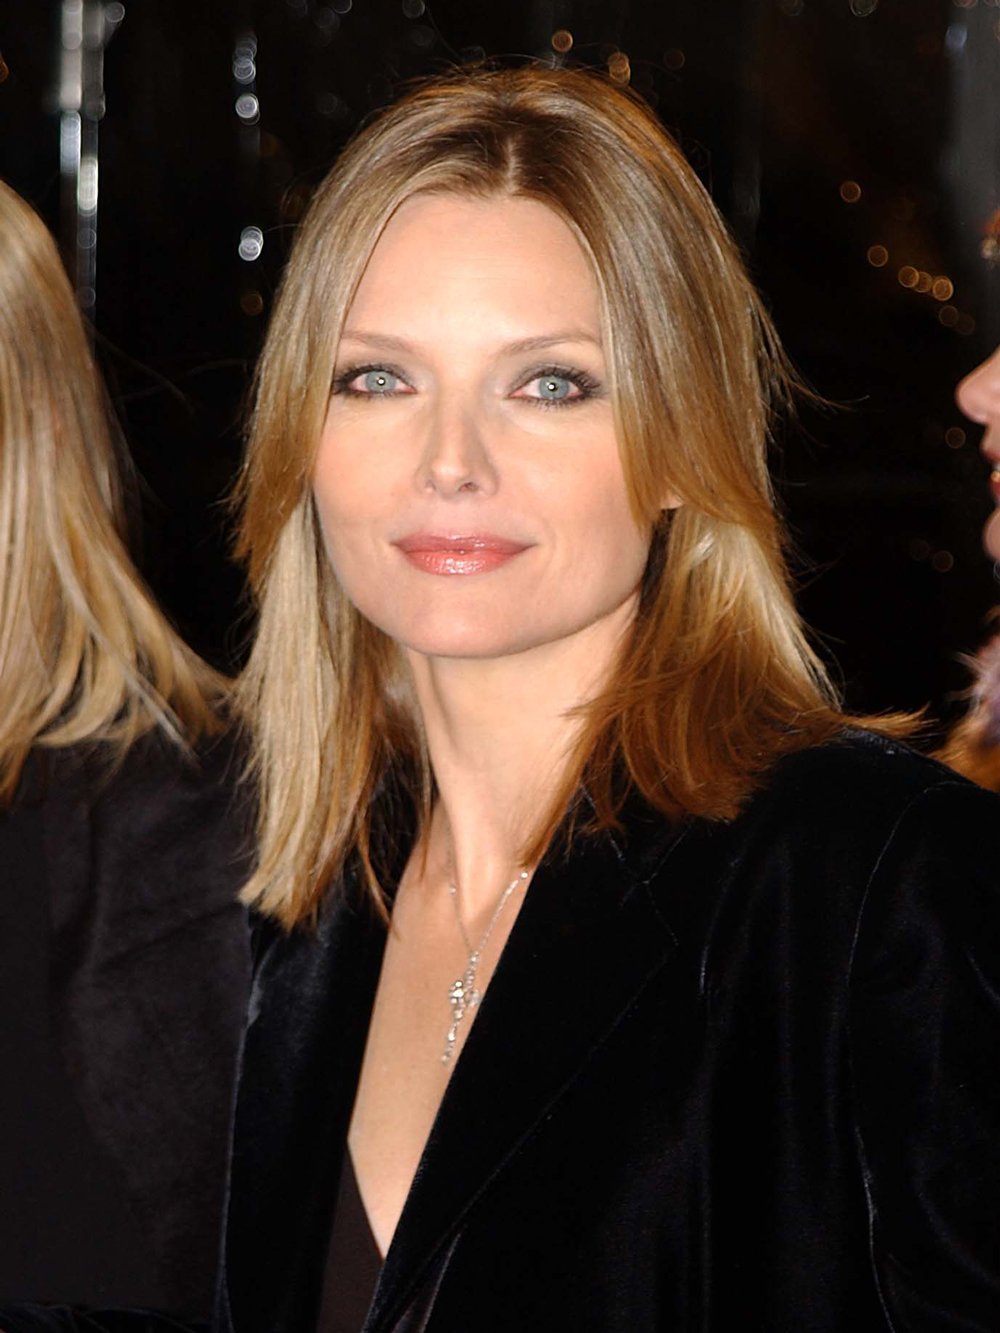 Michelle Pfeiffer Hair Transformation | InStyle.com